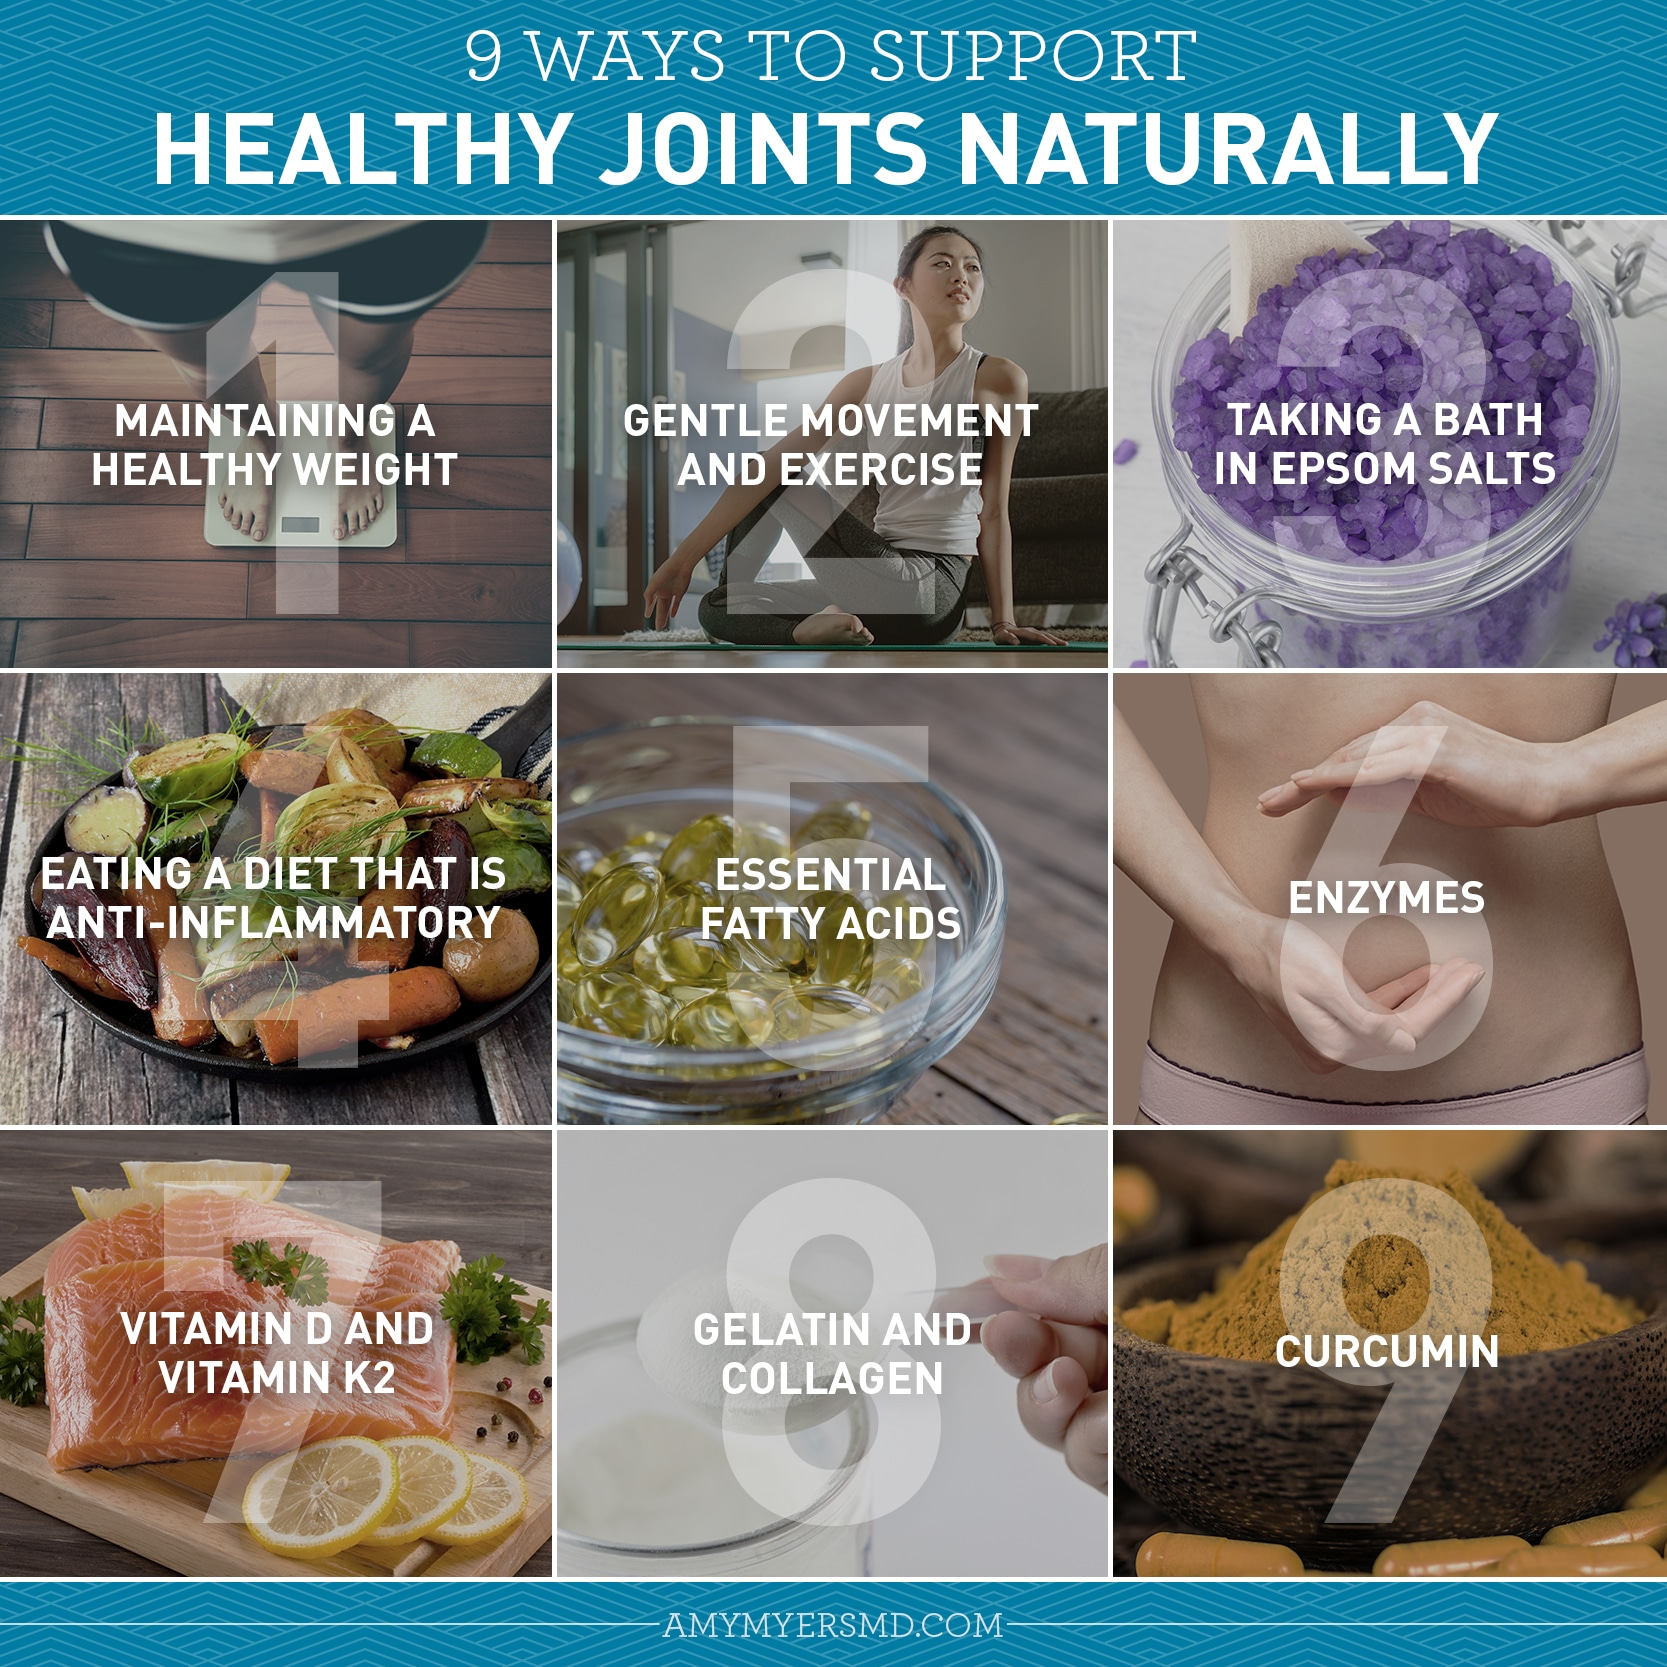 9 Ways to Support Healthy Joints Naturally - Infographic - Amy Myers MD